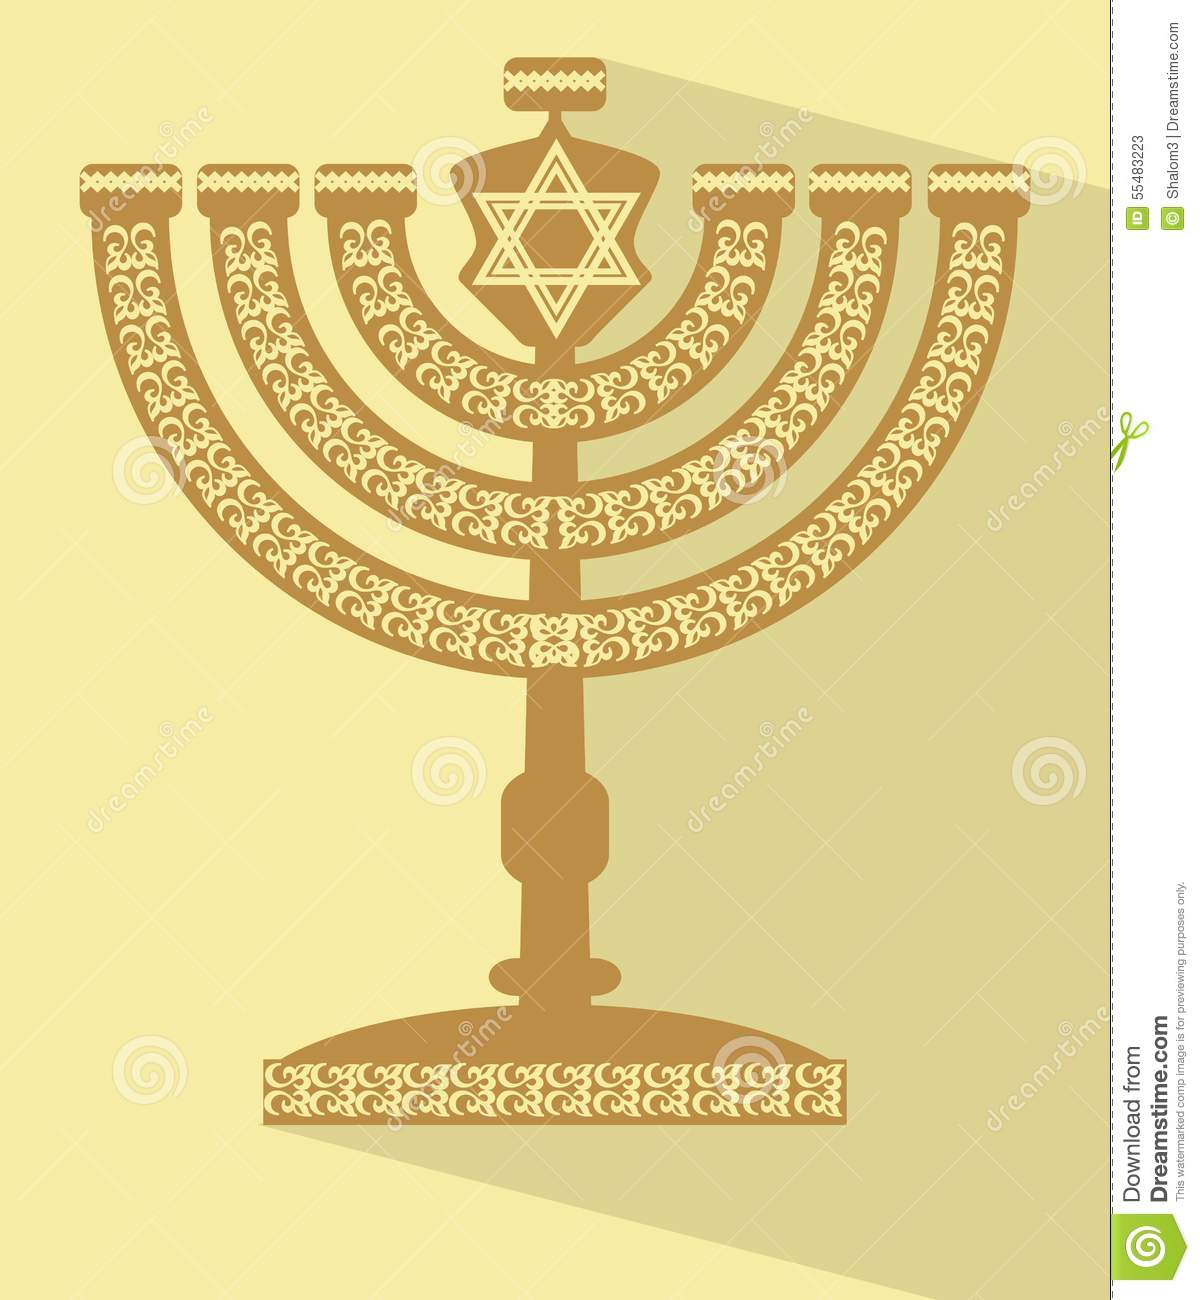 Jewish seven-branched candelabrum menorah with the Star of David, flat design vector illustration with long shadow, Yamim Noraim